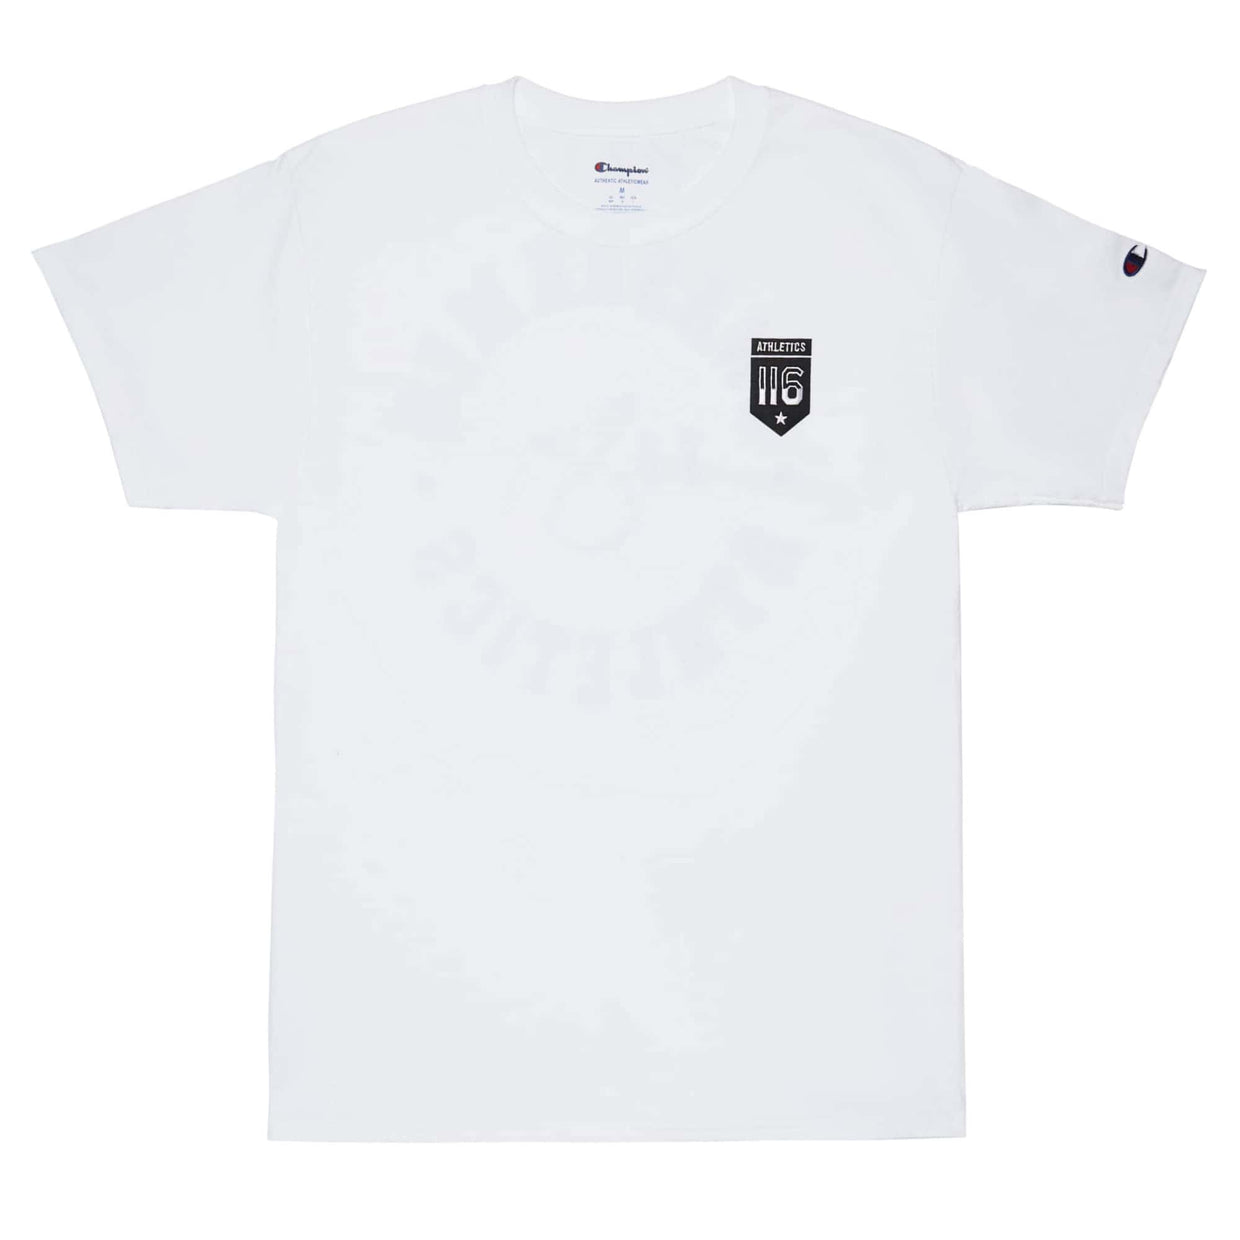 'Unashamed' Athletics x Champion Tee